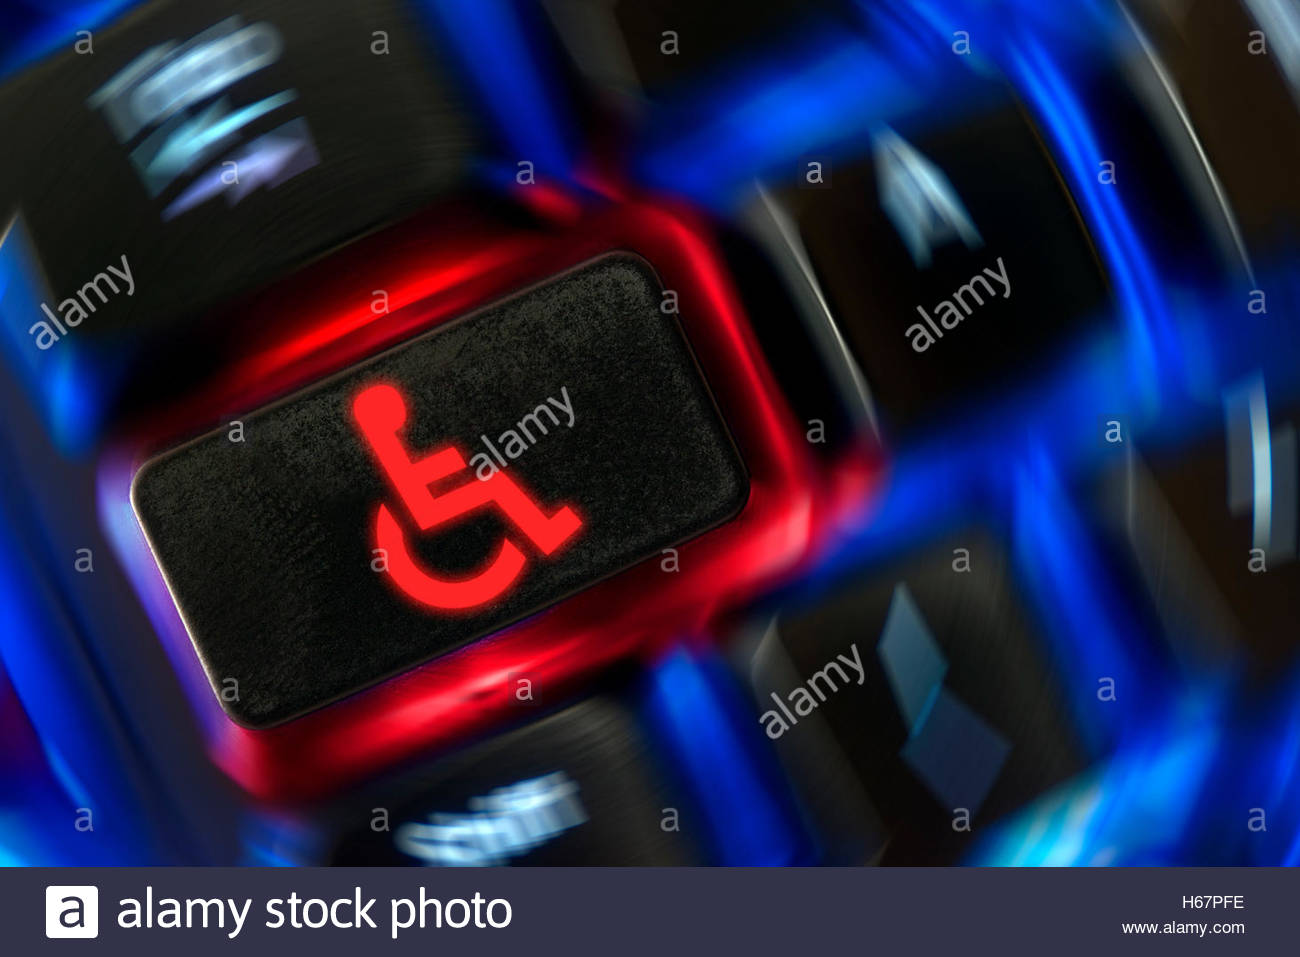 wheelchair emoji potty chairs for special needs shown on a backlit keyboard dorset england uk